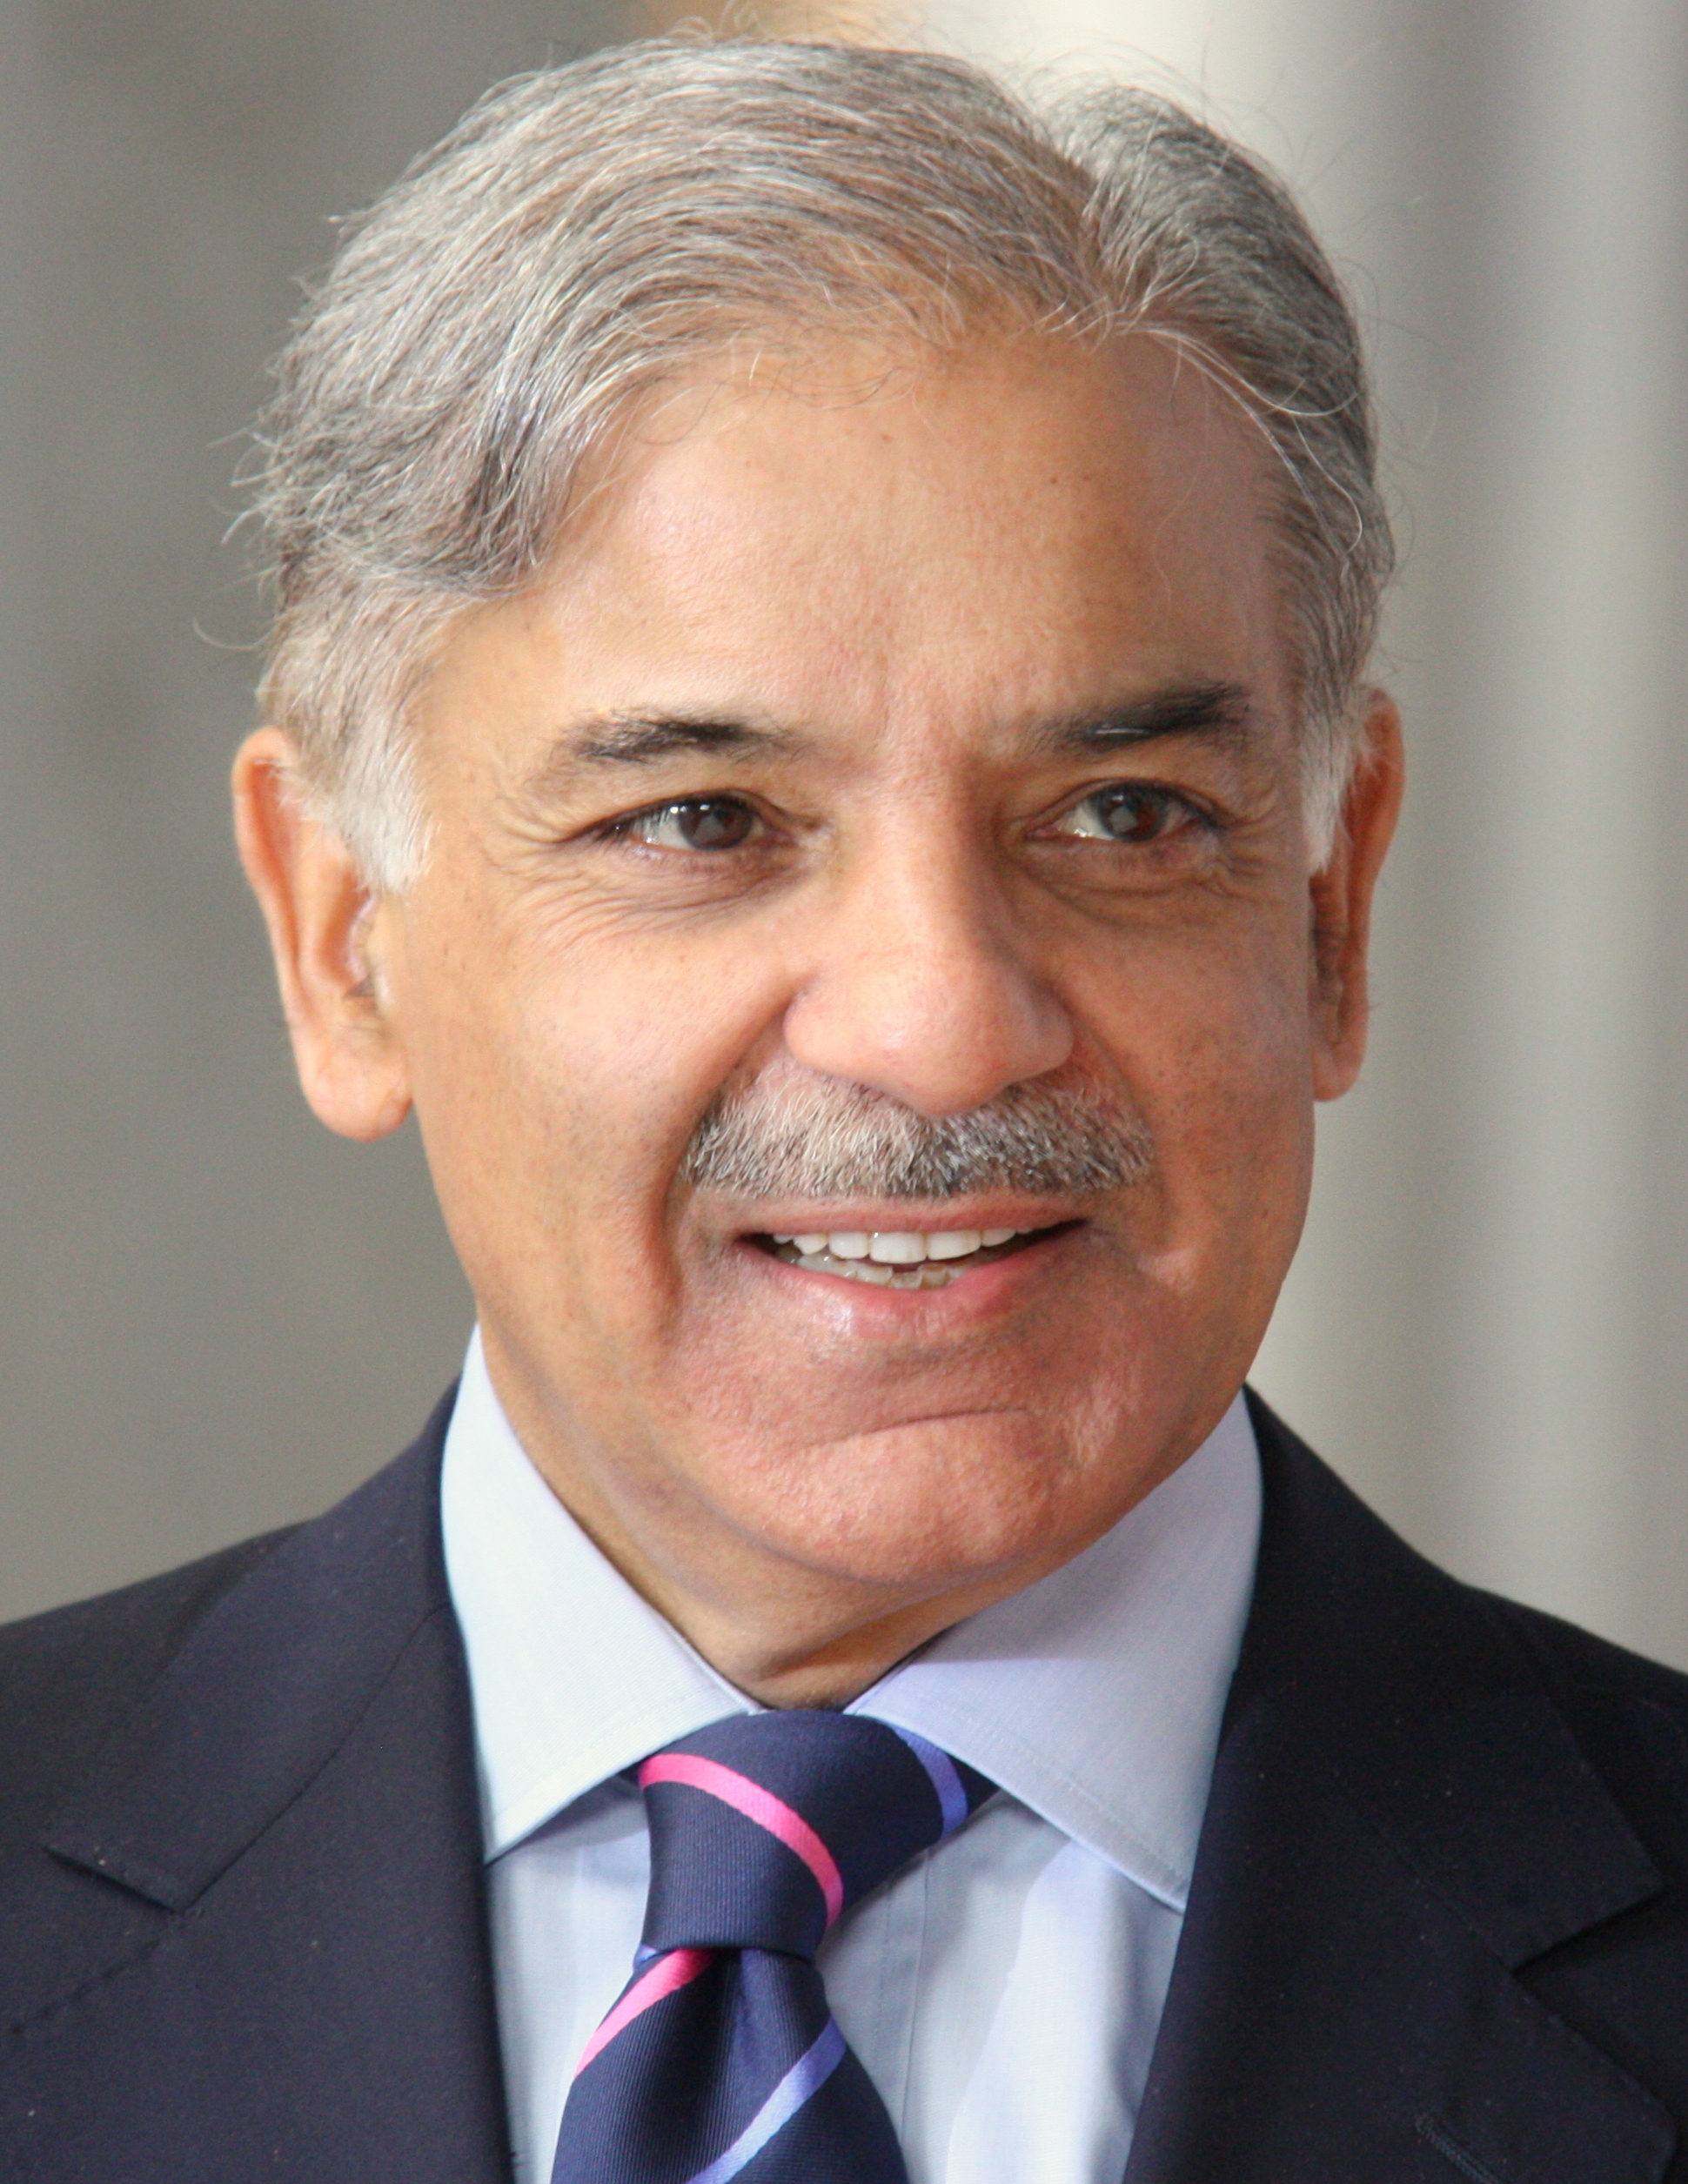 British daily alleges Shehbaz Sharif embezzled aid money; party refutes charges